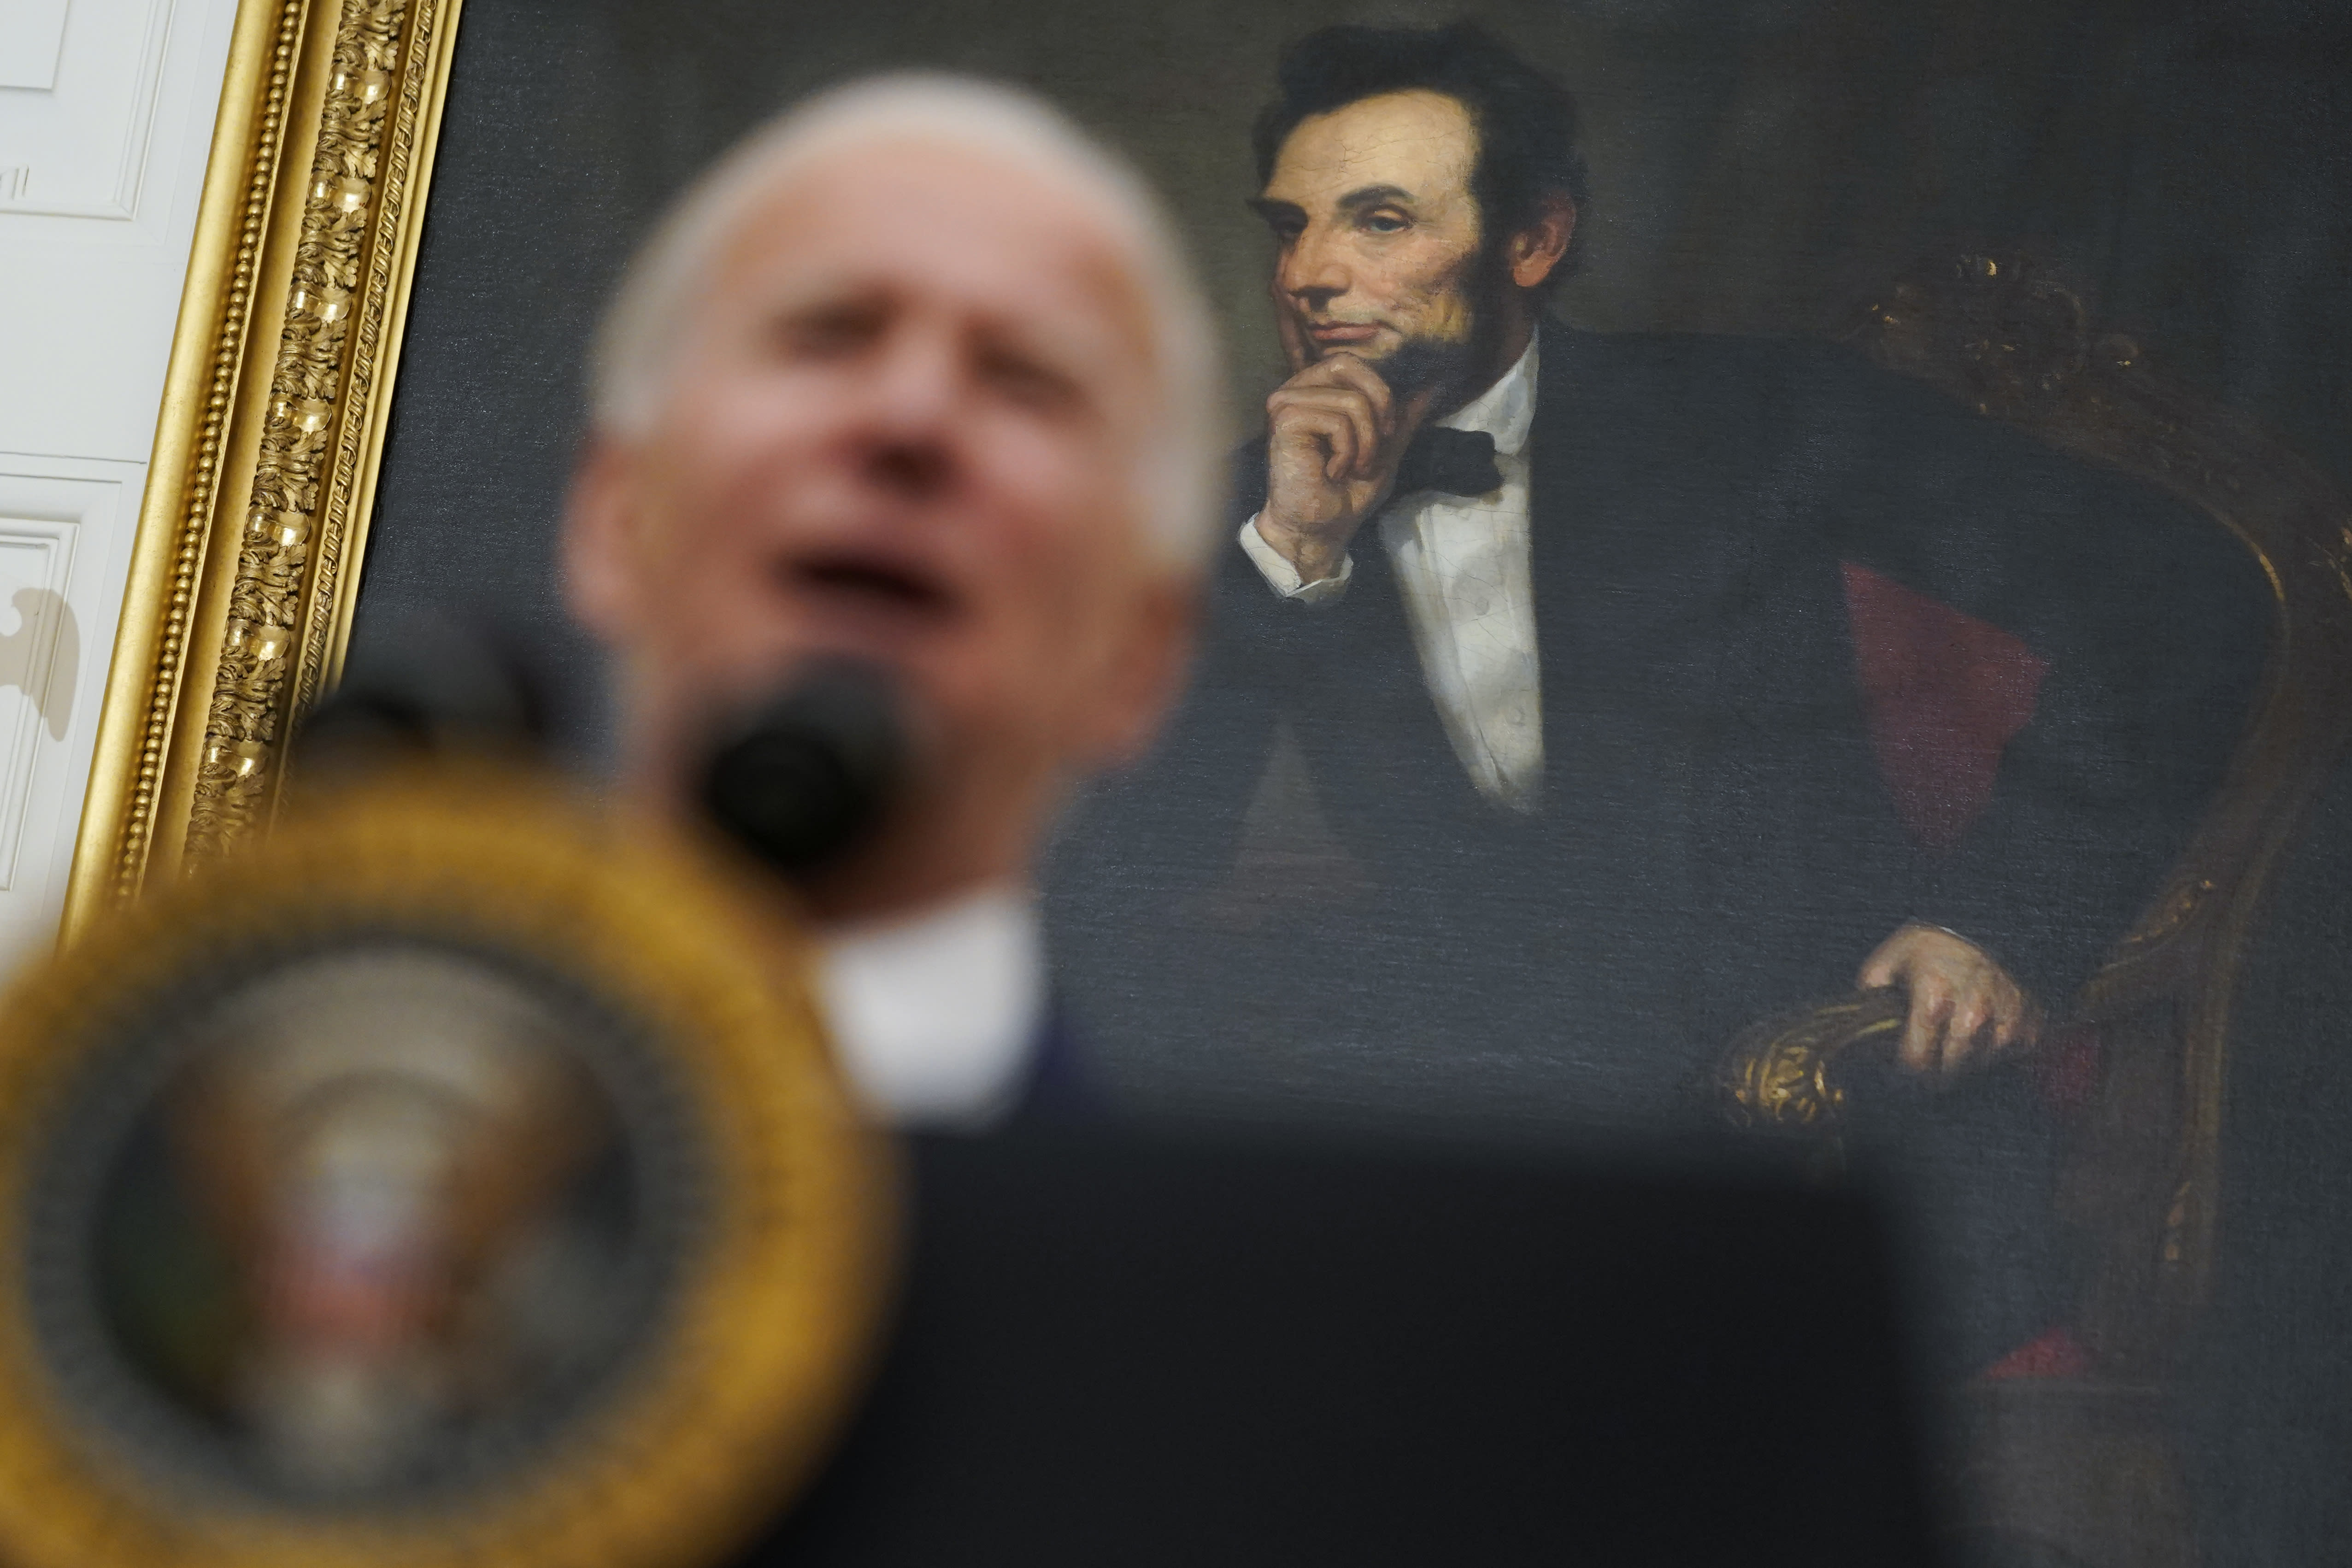 Biden's early approach to virus: Underpromise, overdeliver